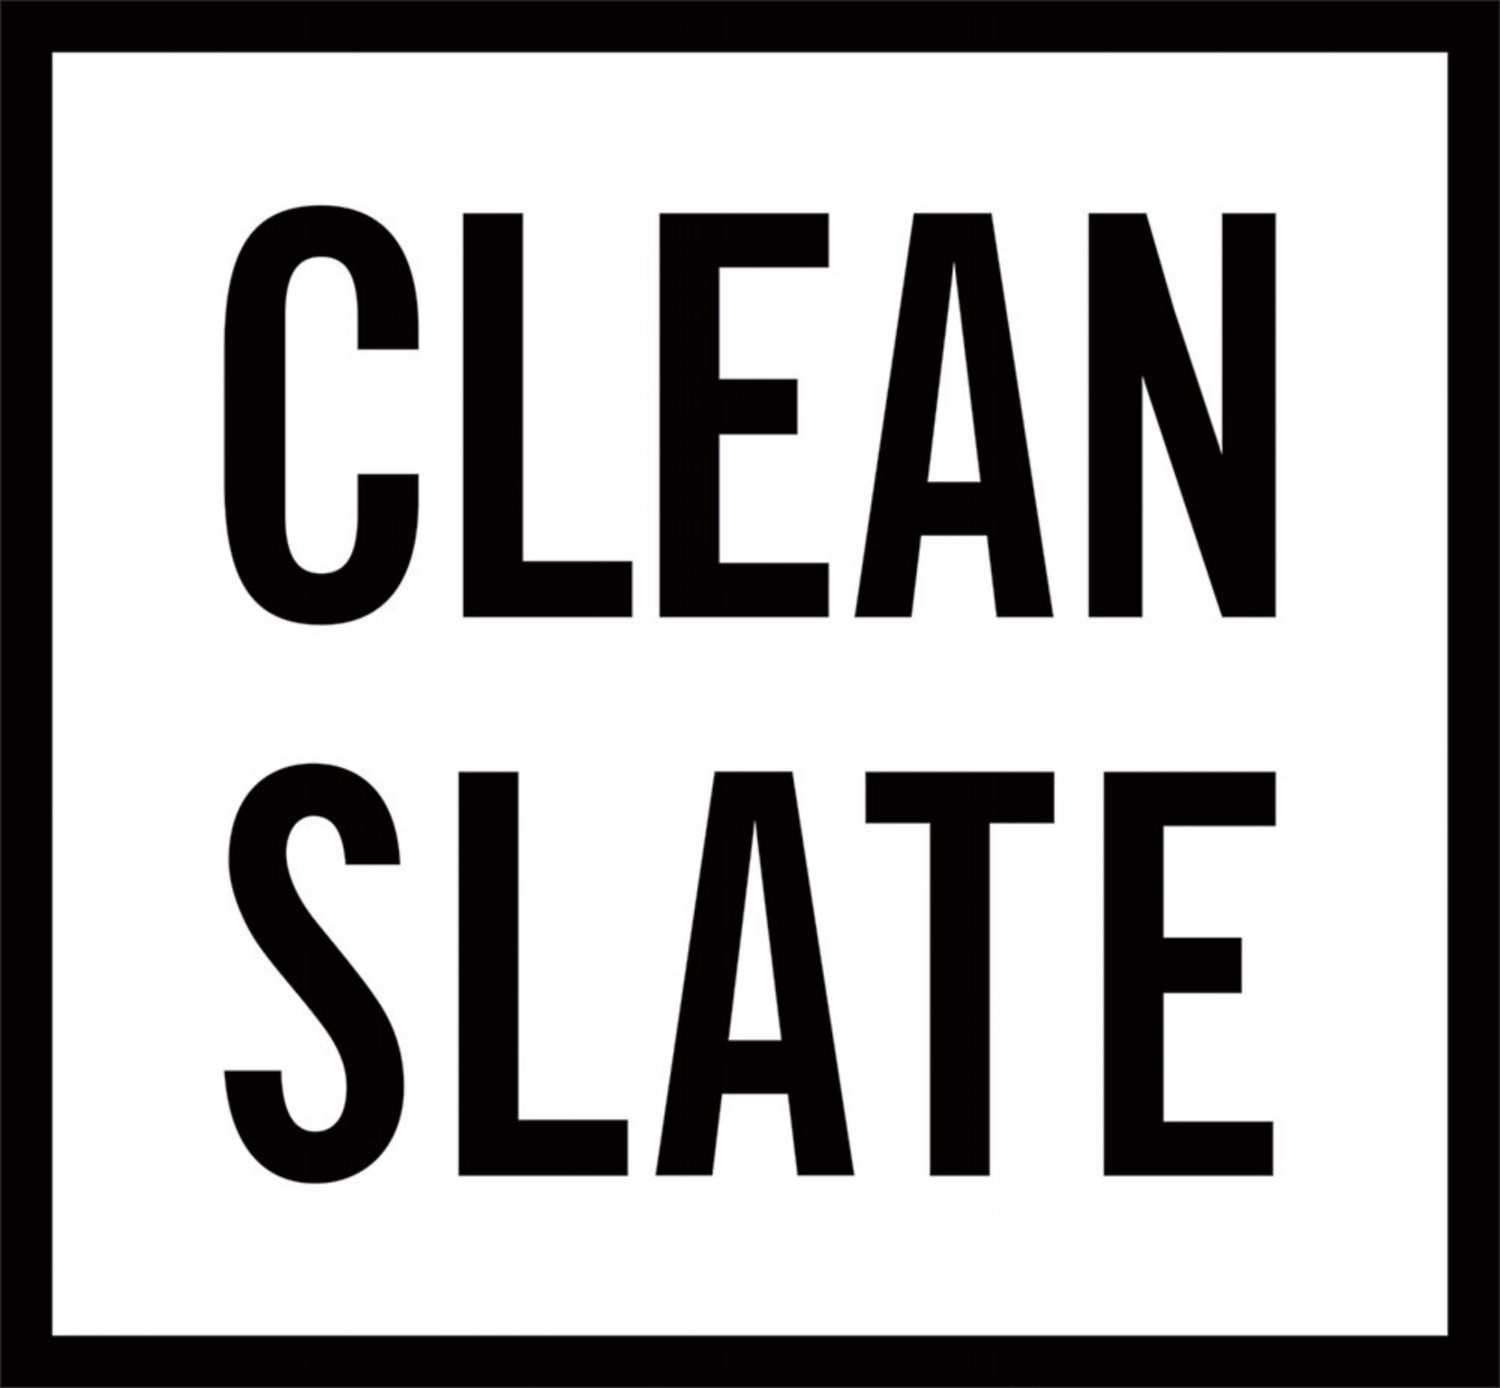 CLEAN SLATE SKIN CARE | natural vegan handmade skin care